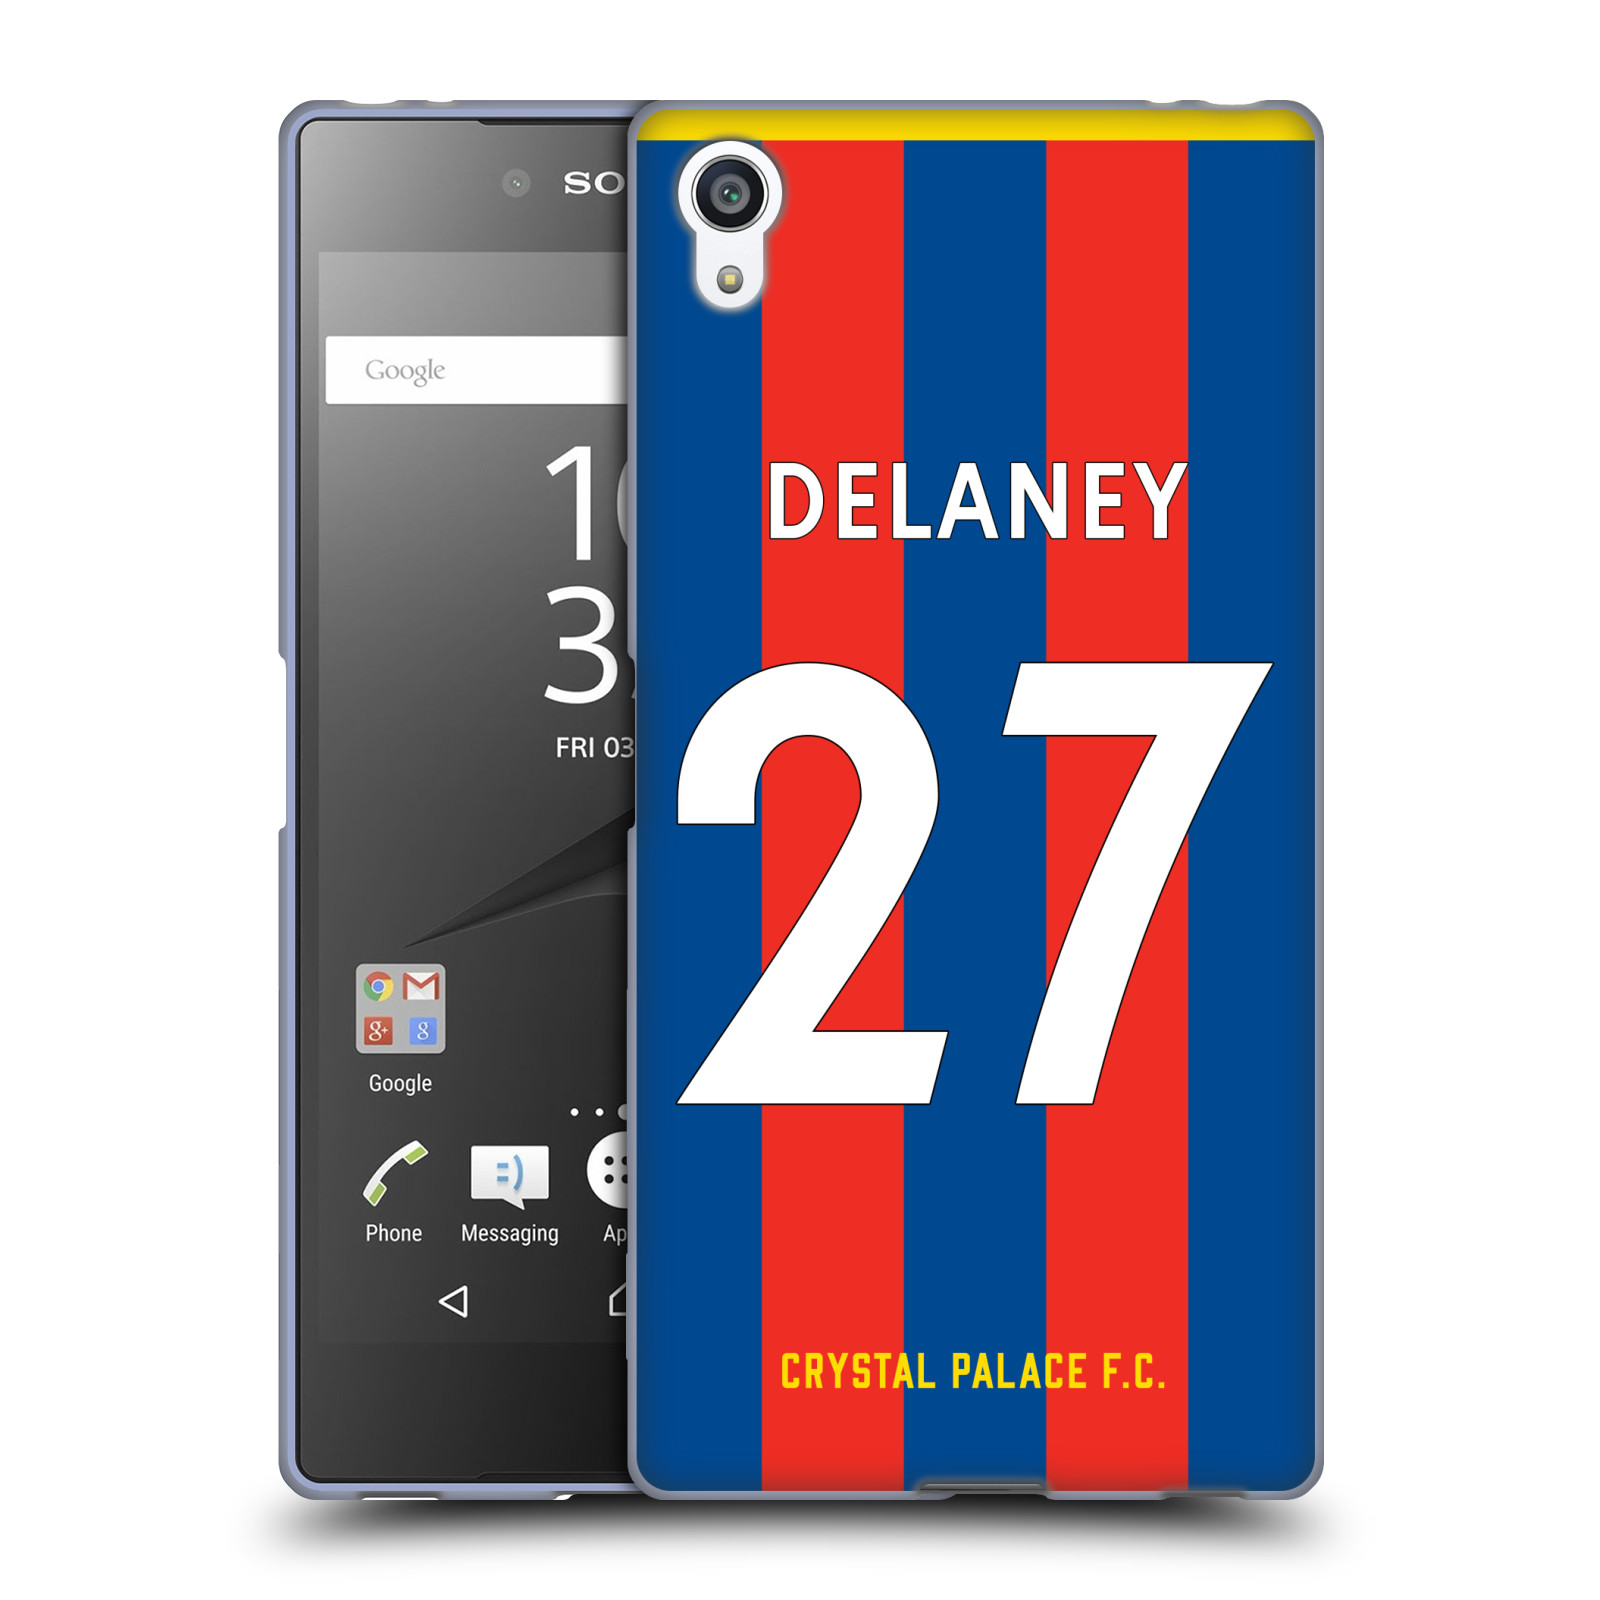 Officiel-Crystal-Palace-FC-2017-18-joueurs-Home-Kit-2-GEL-CASE-FOR-SONY-Phones-2